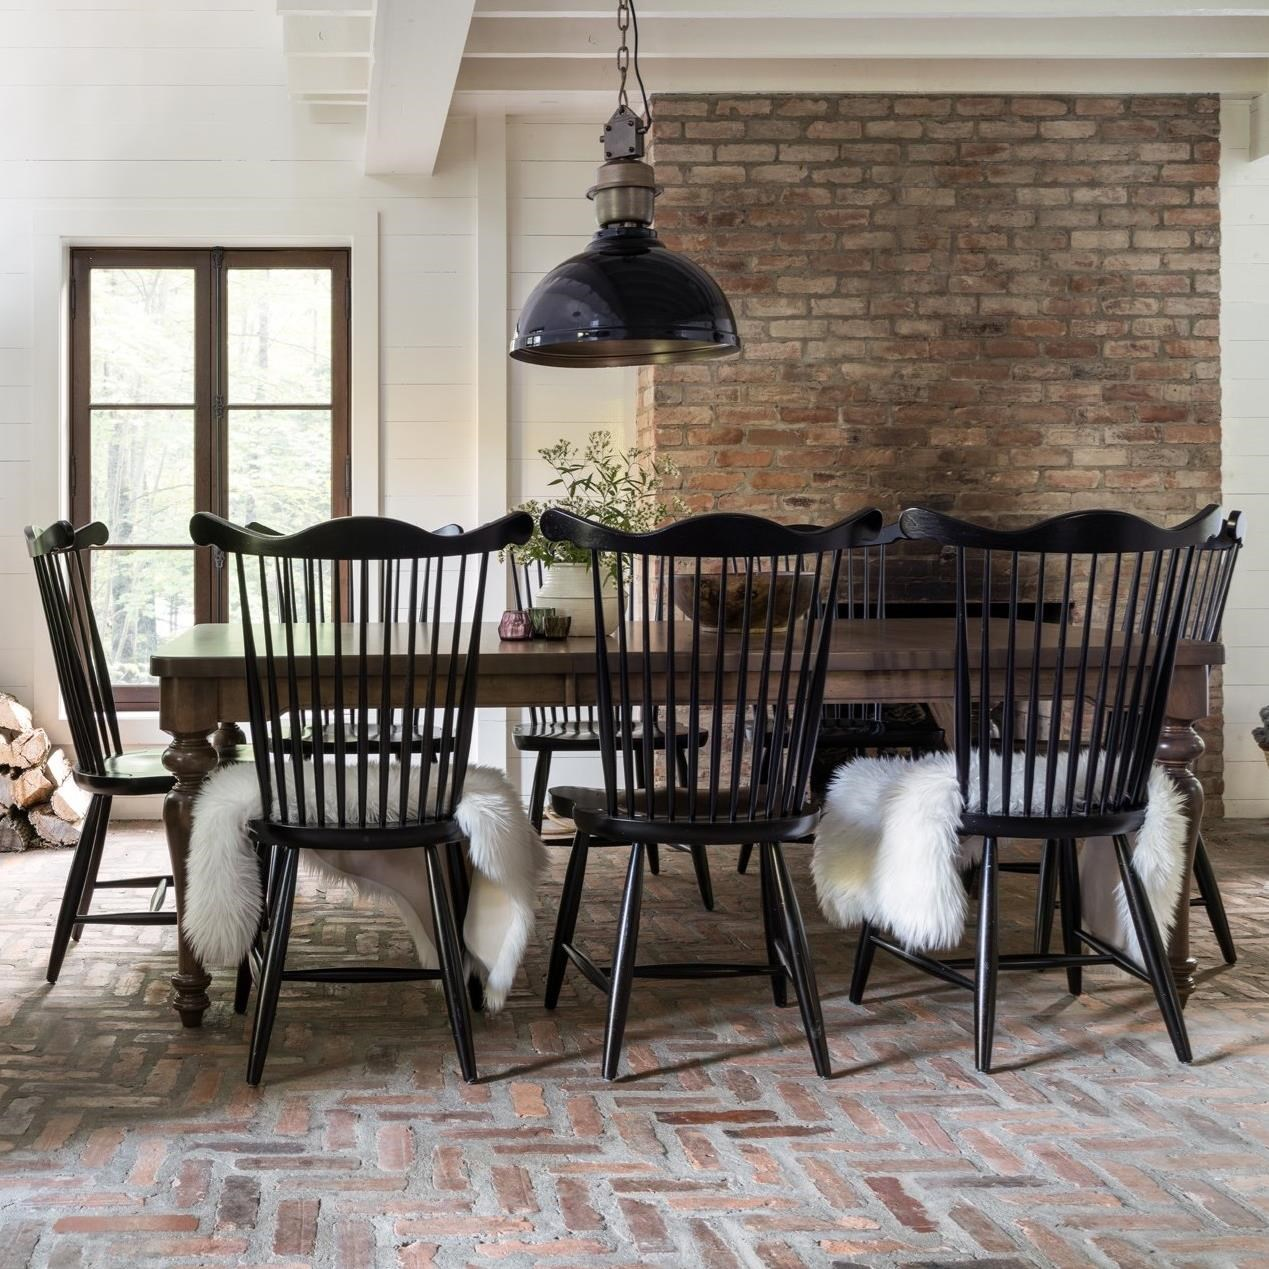 Canadel Farmhouse Chic Customizable Dining Table Set